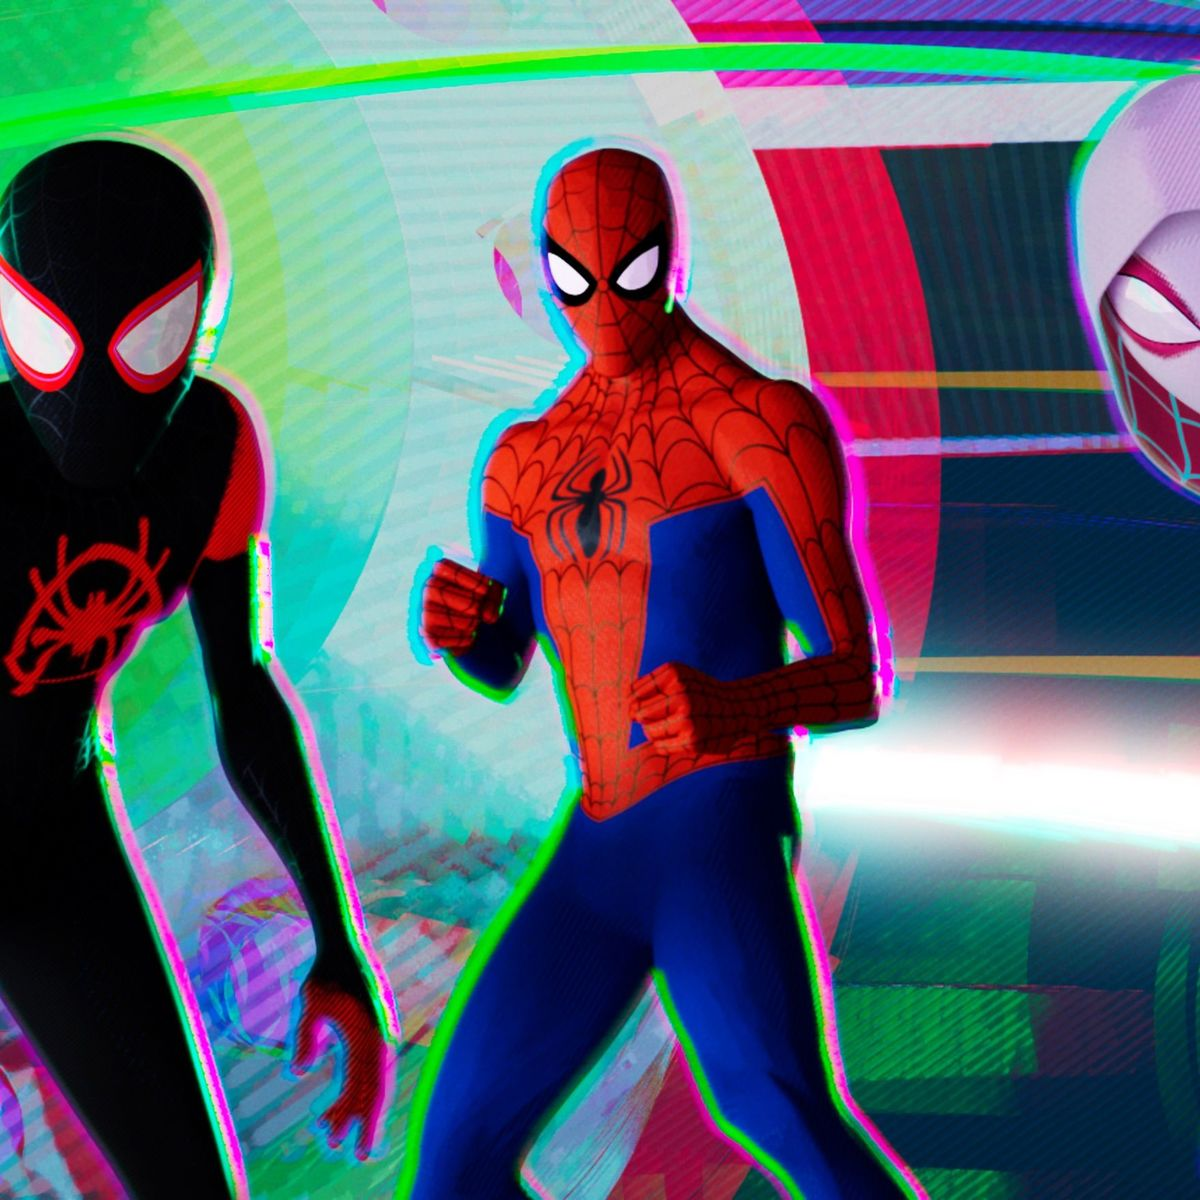 Audiences Flock to Spider-Verse, Abandon Mortal Engines